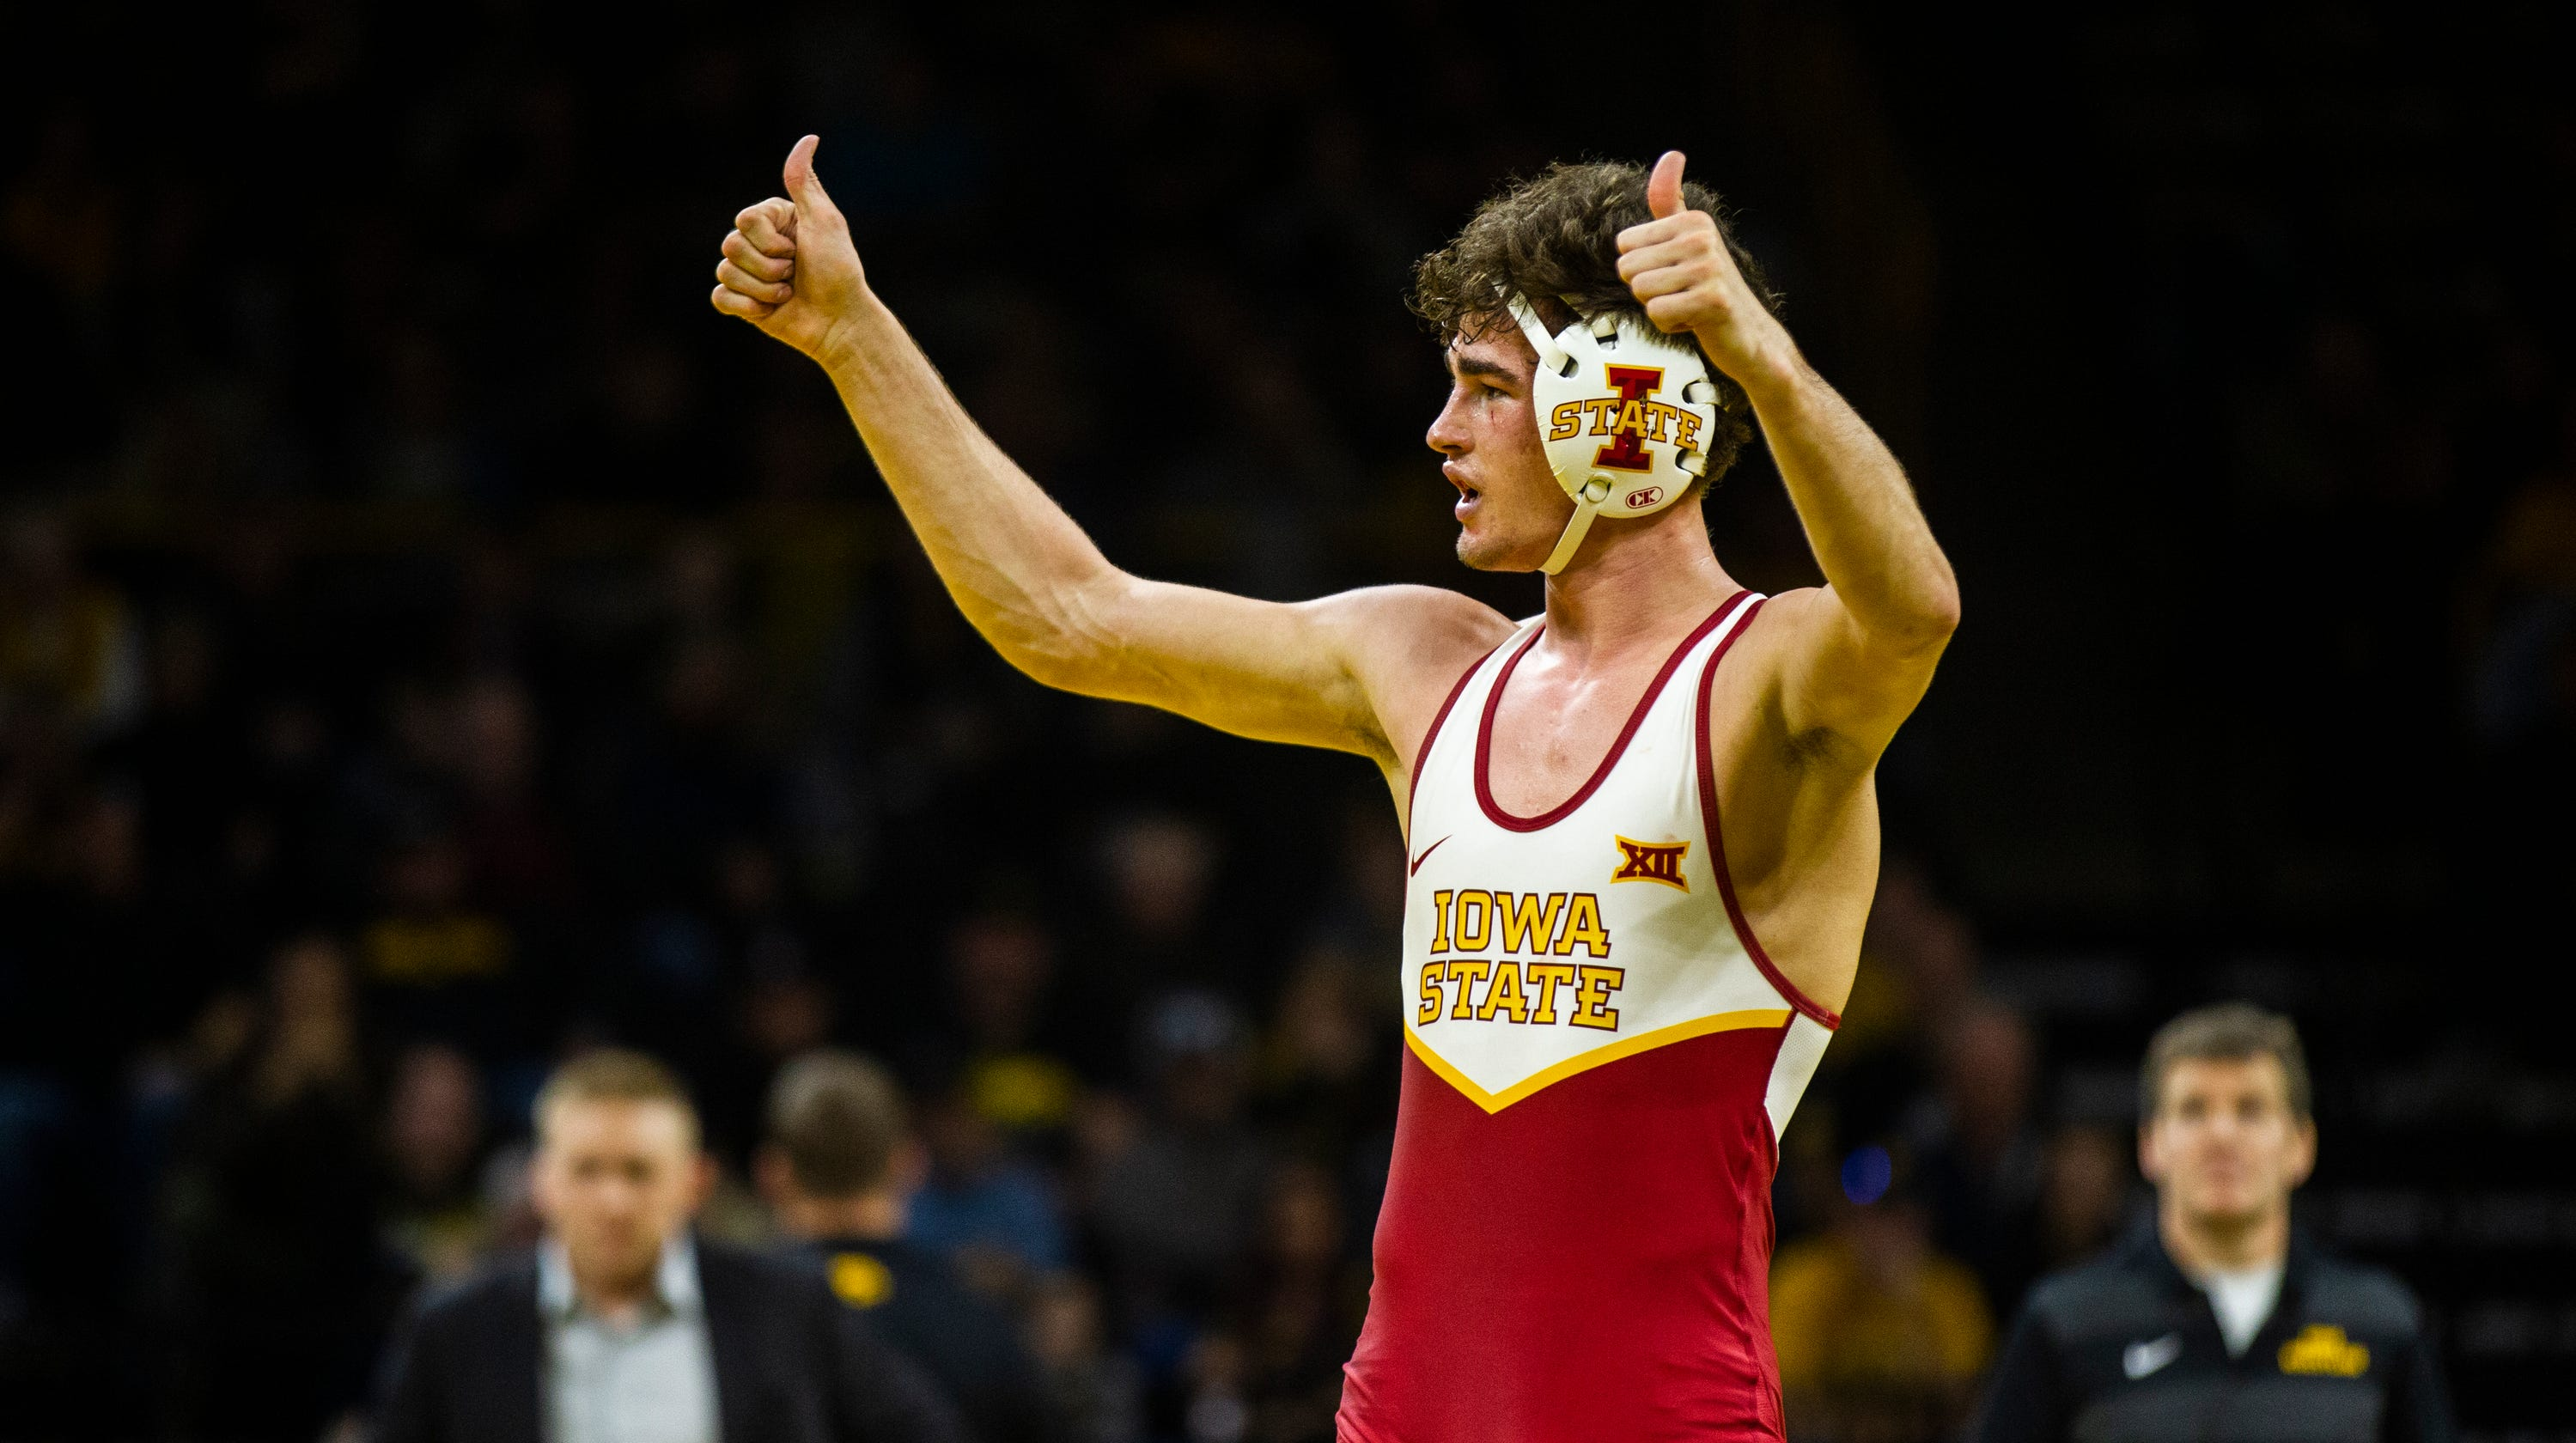 Wrestling: Iowa State Extends Dual Winning Streak To Five